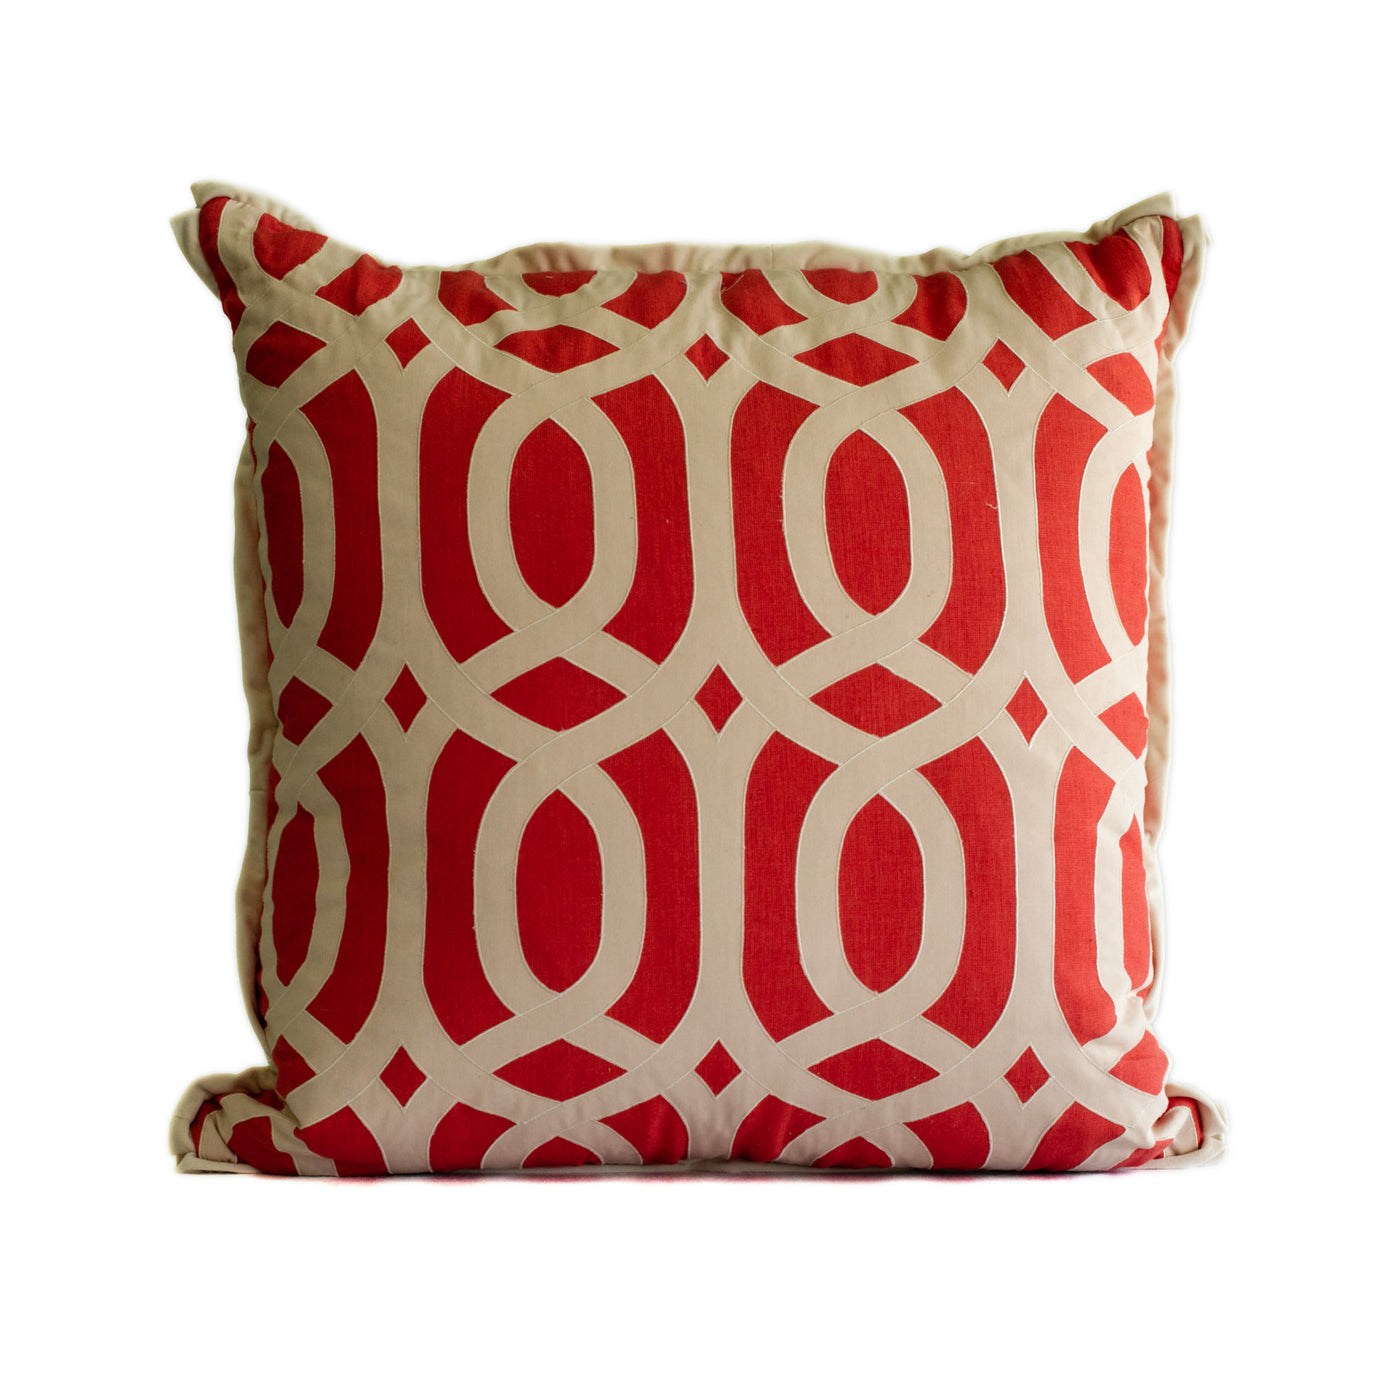 Pillow Coral linen with a Geometric Pattern